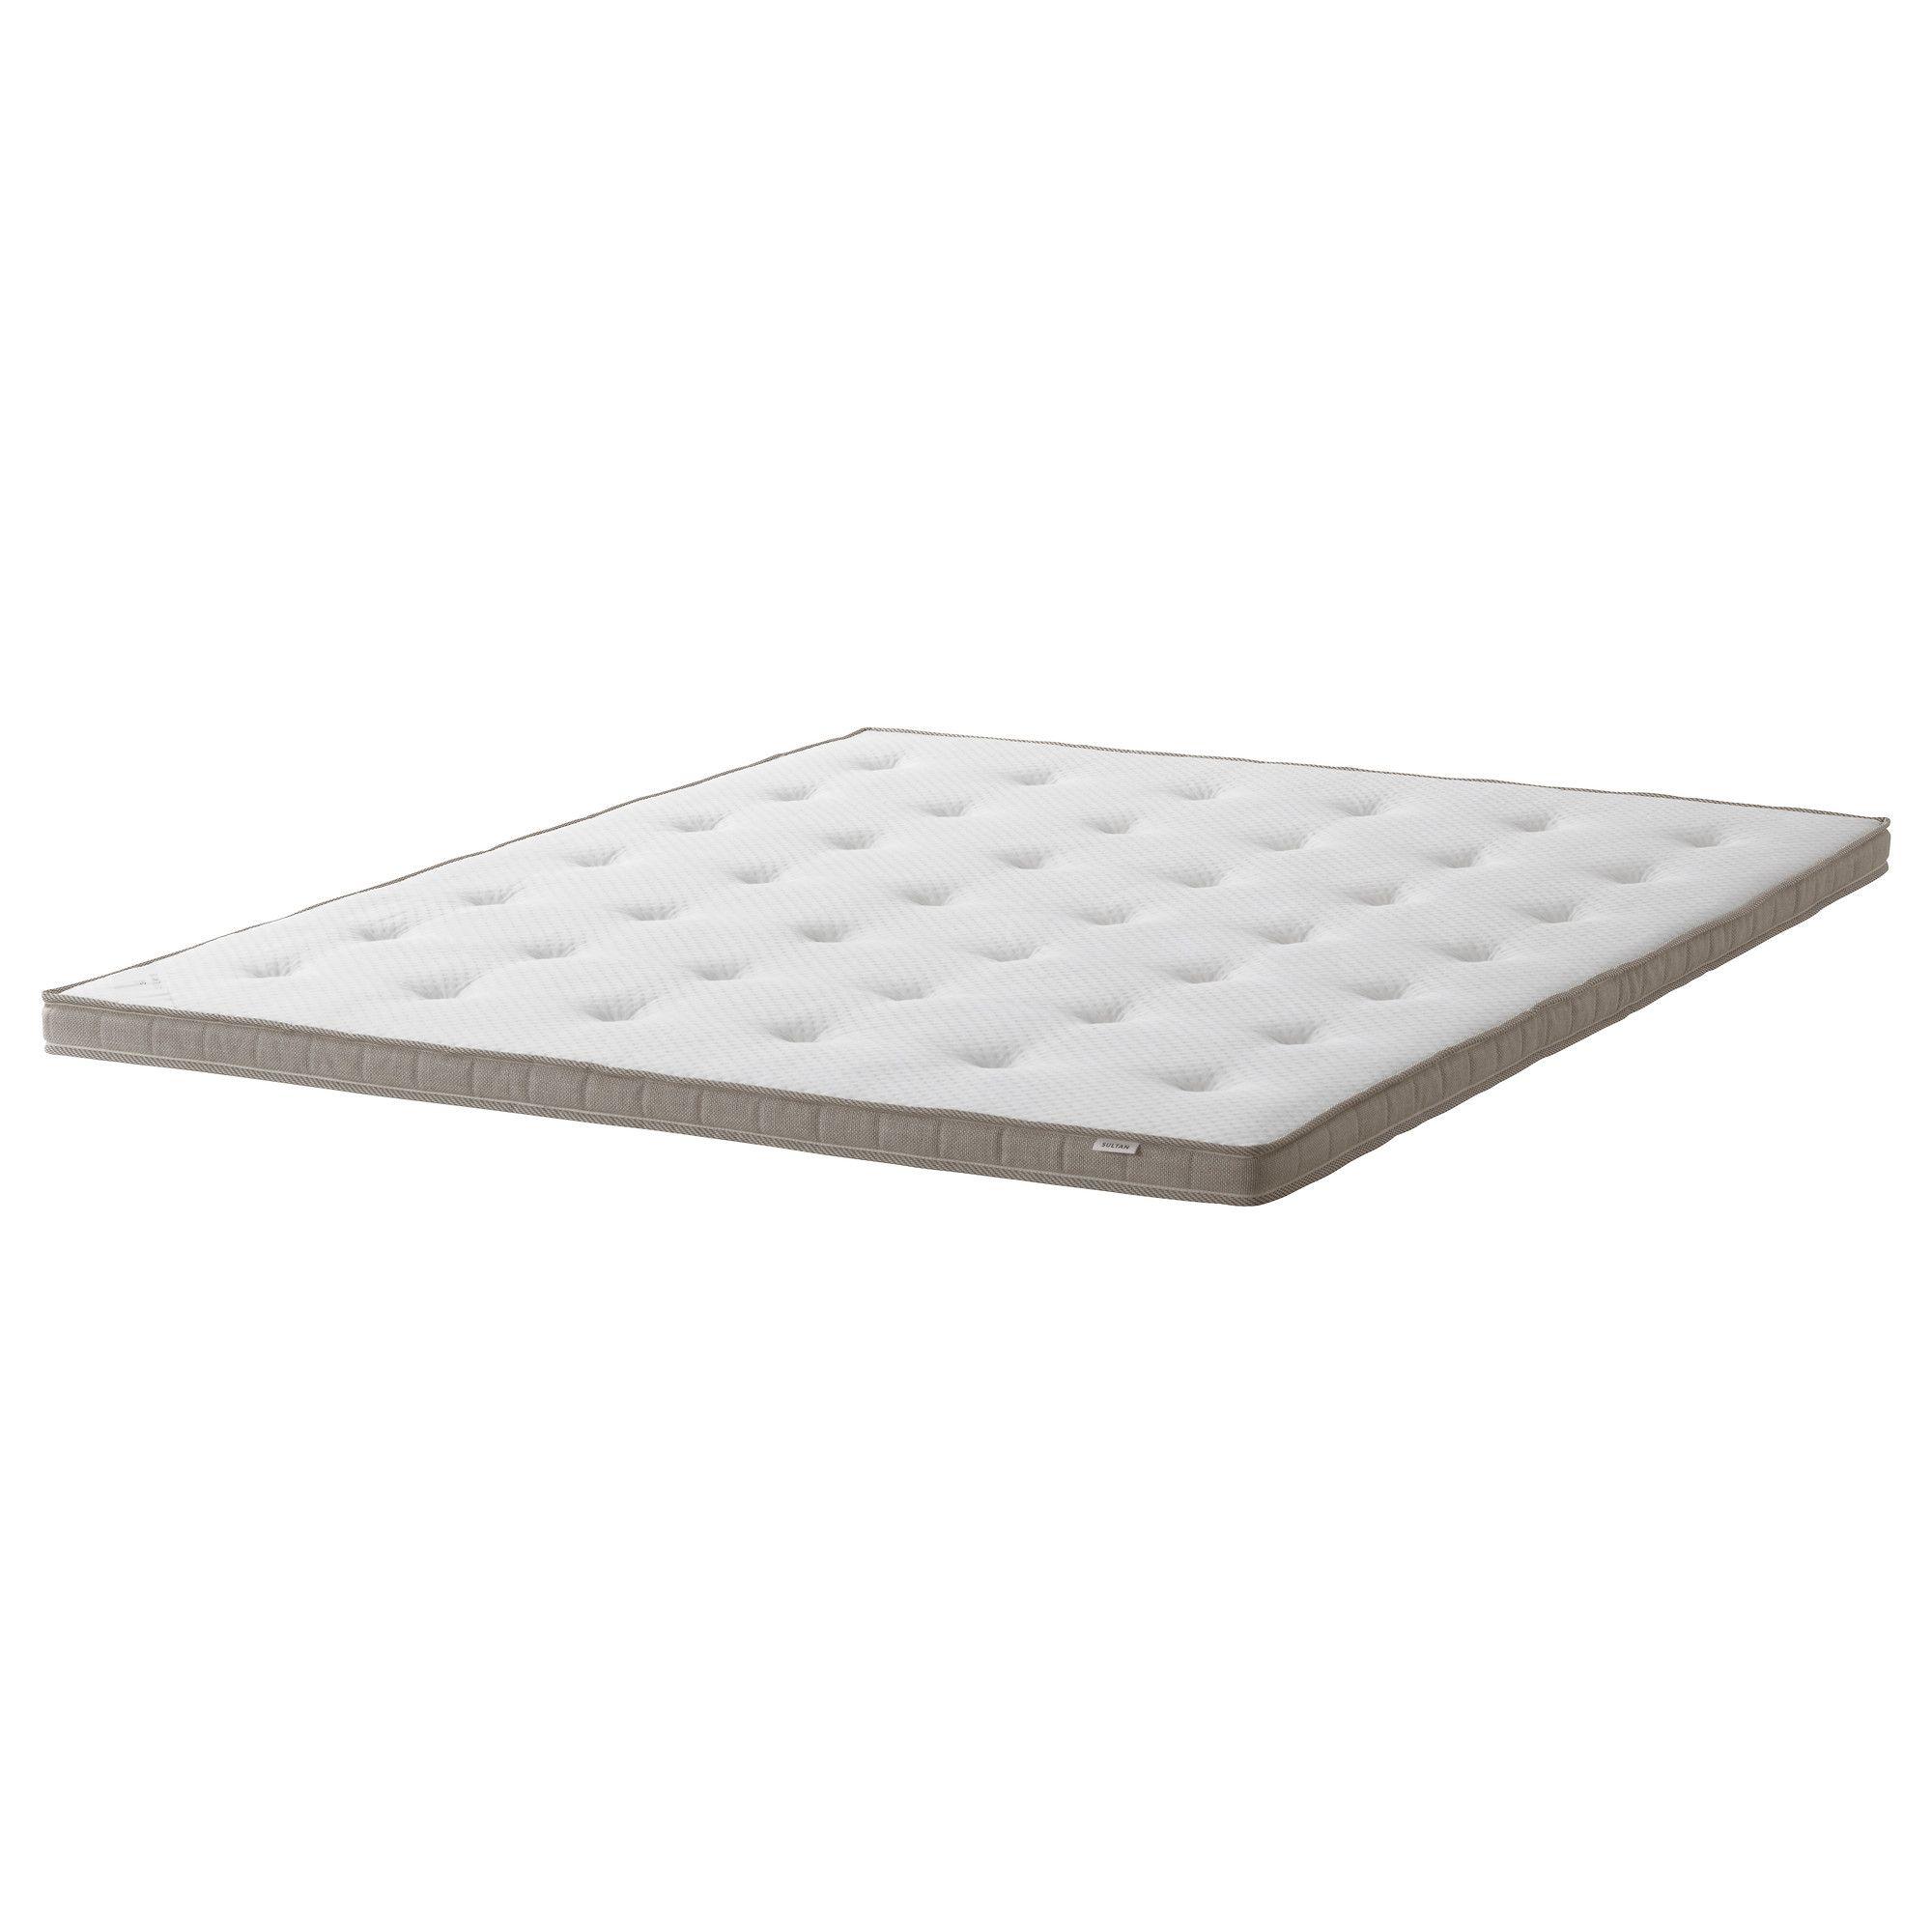 Statue Of Ikea Mattress Topper Create A Tiny Layer For Ultimate